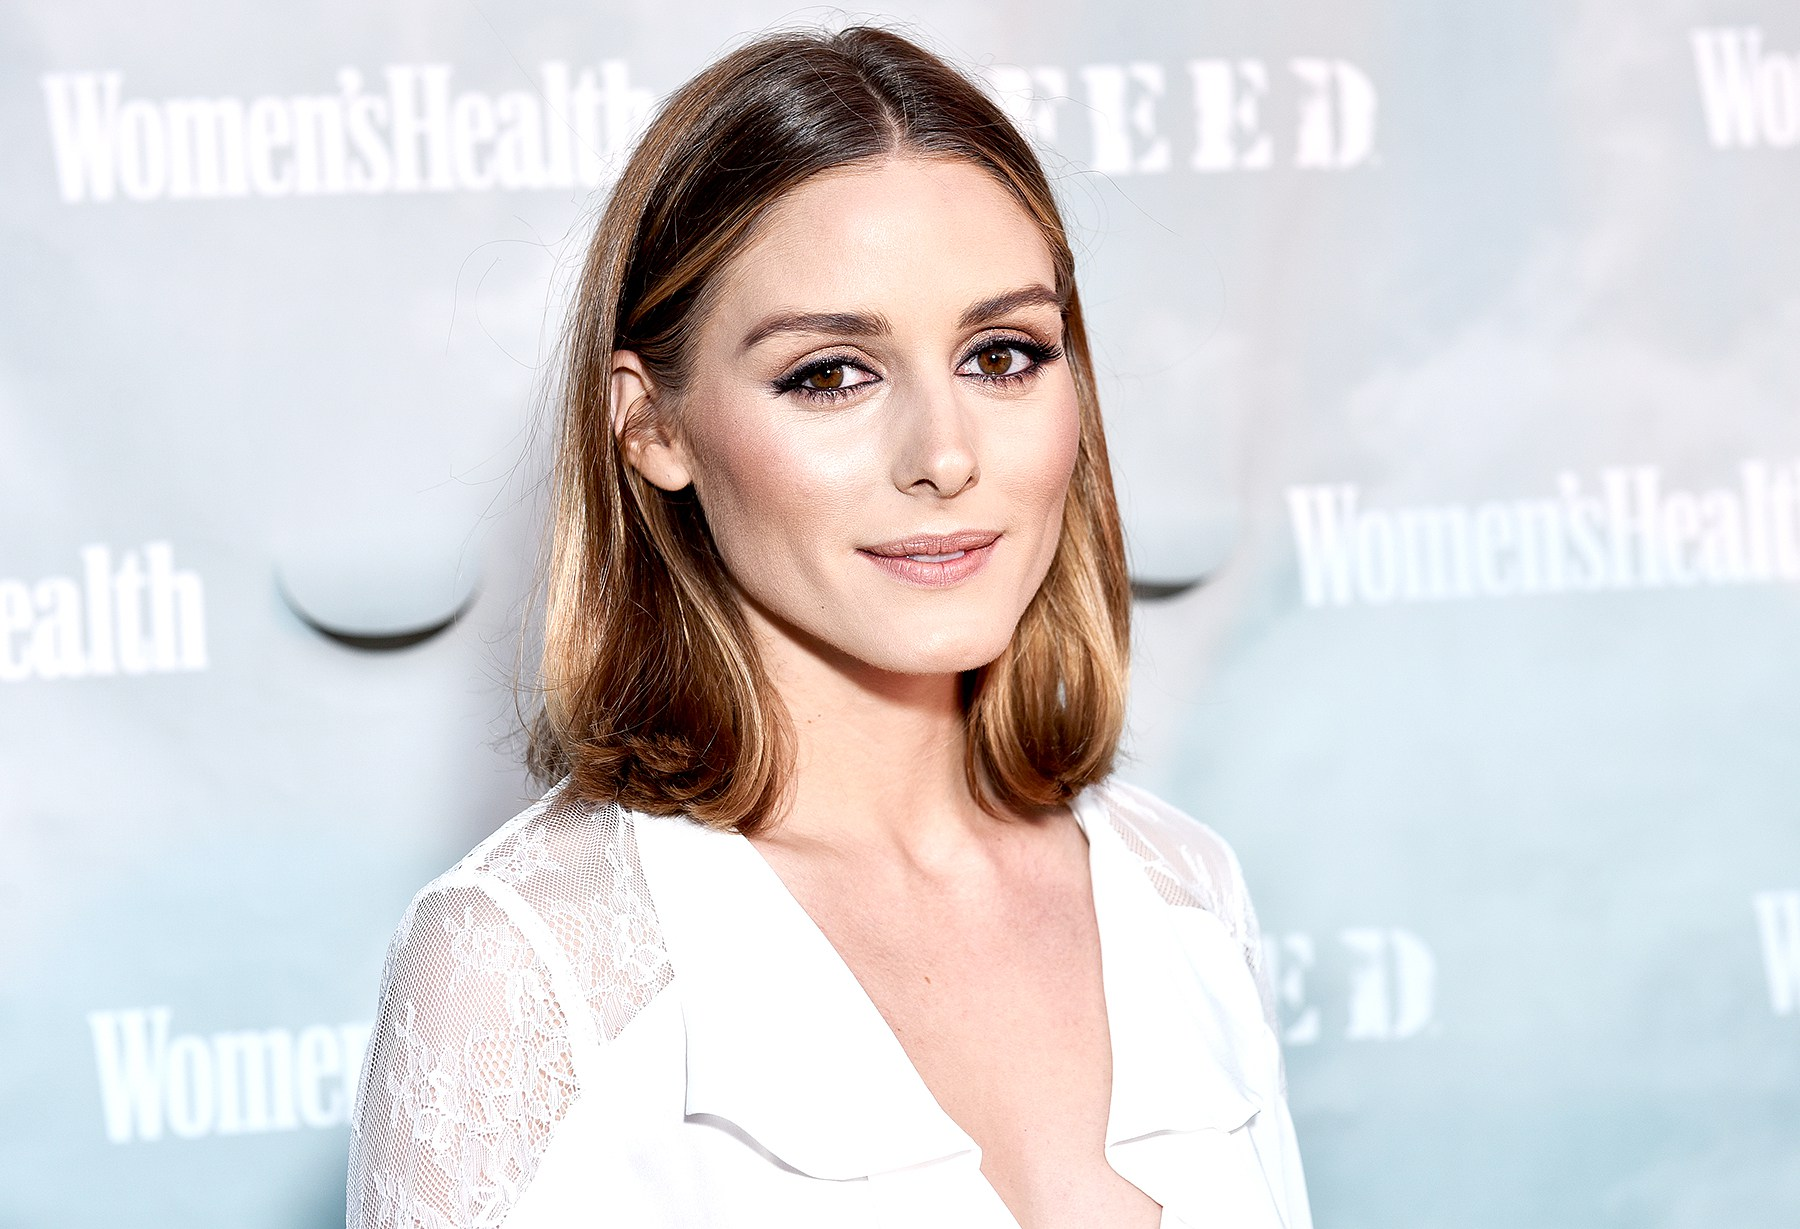 Olivia Palermo attends Women's Health and FEED's 6th Annual Party Under the Stars at Bridgehampton Tennis and Surf Club on August 5, 2017 in Bridgehampton, New York.